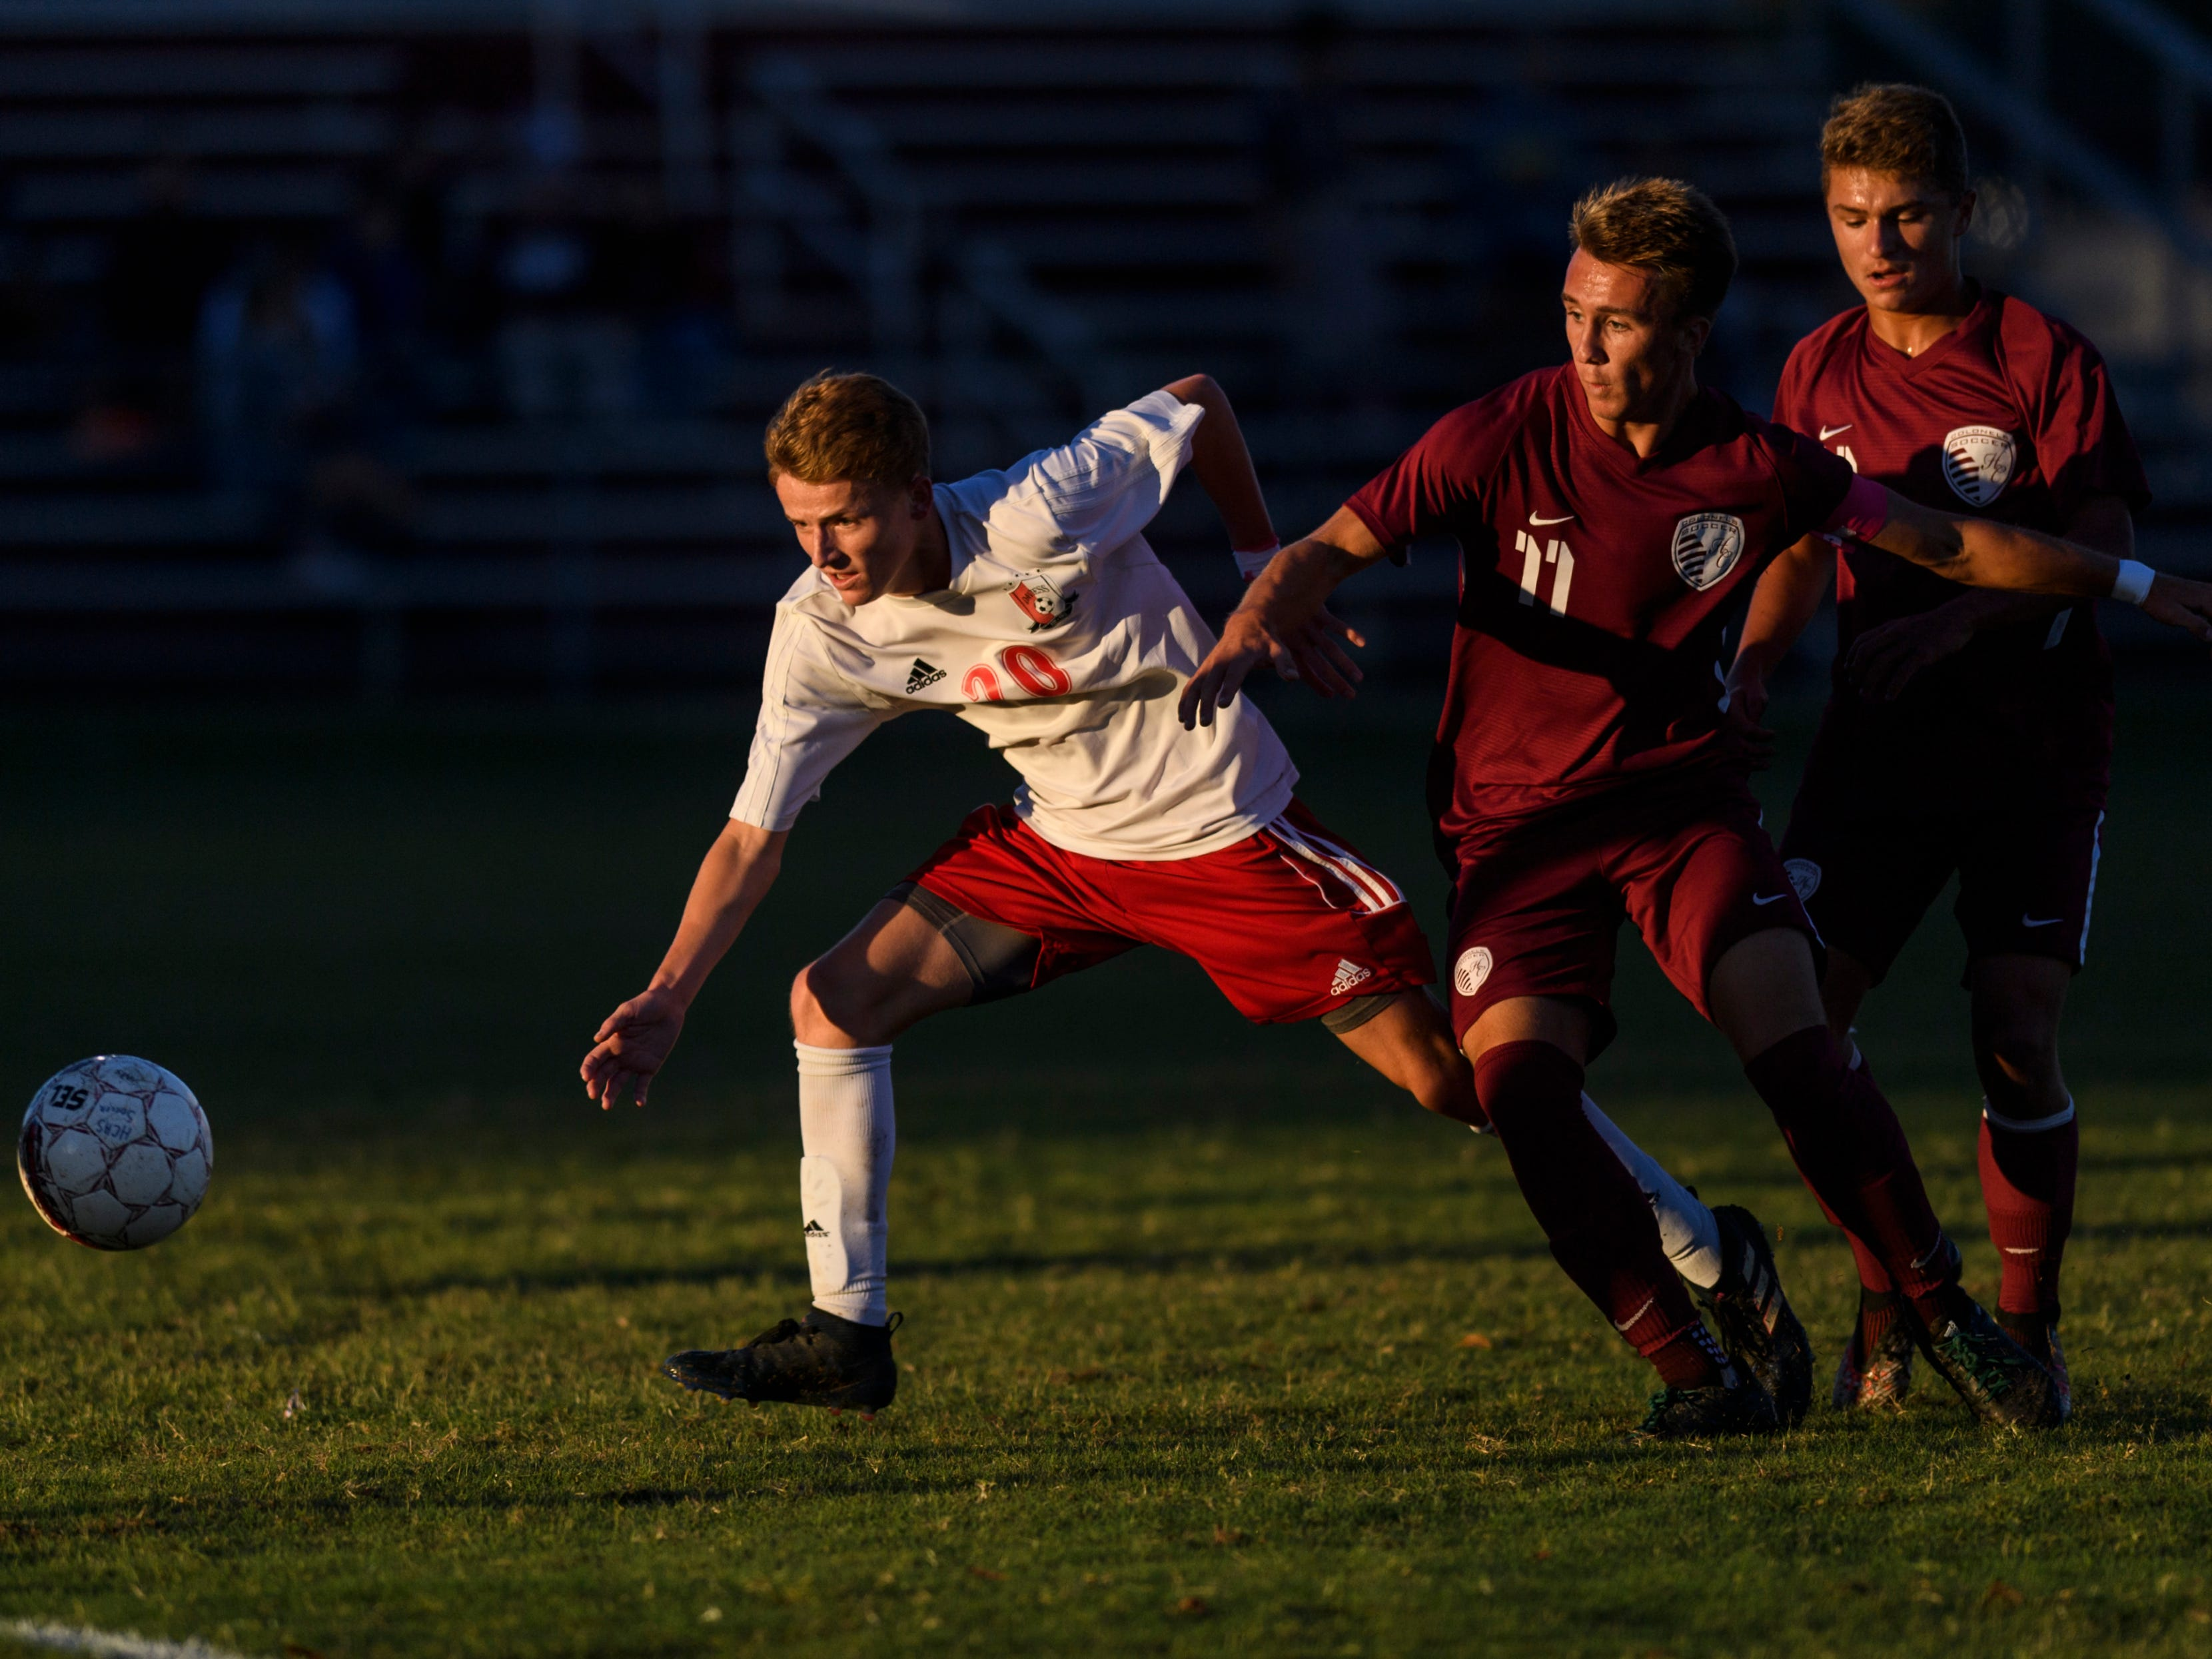 Daviess County's Jacob Boling (20) and Henderson County's Max Wawrin (11) fight for possession of the ball during the first half at Colonel Field in Henderson, Ky., Thursday, Sept. 27, 2018. The Panthers defeated the Colonels 5-3.